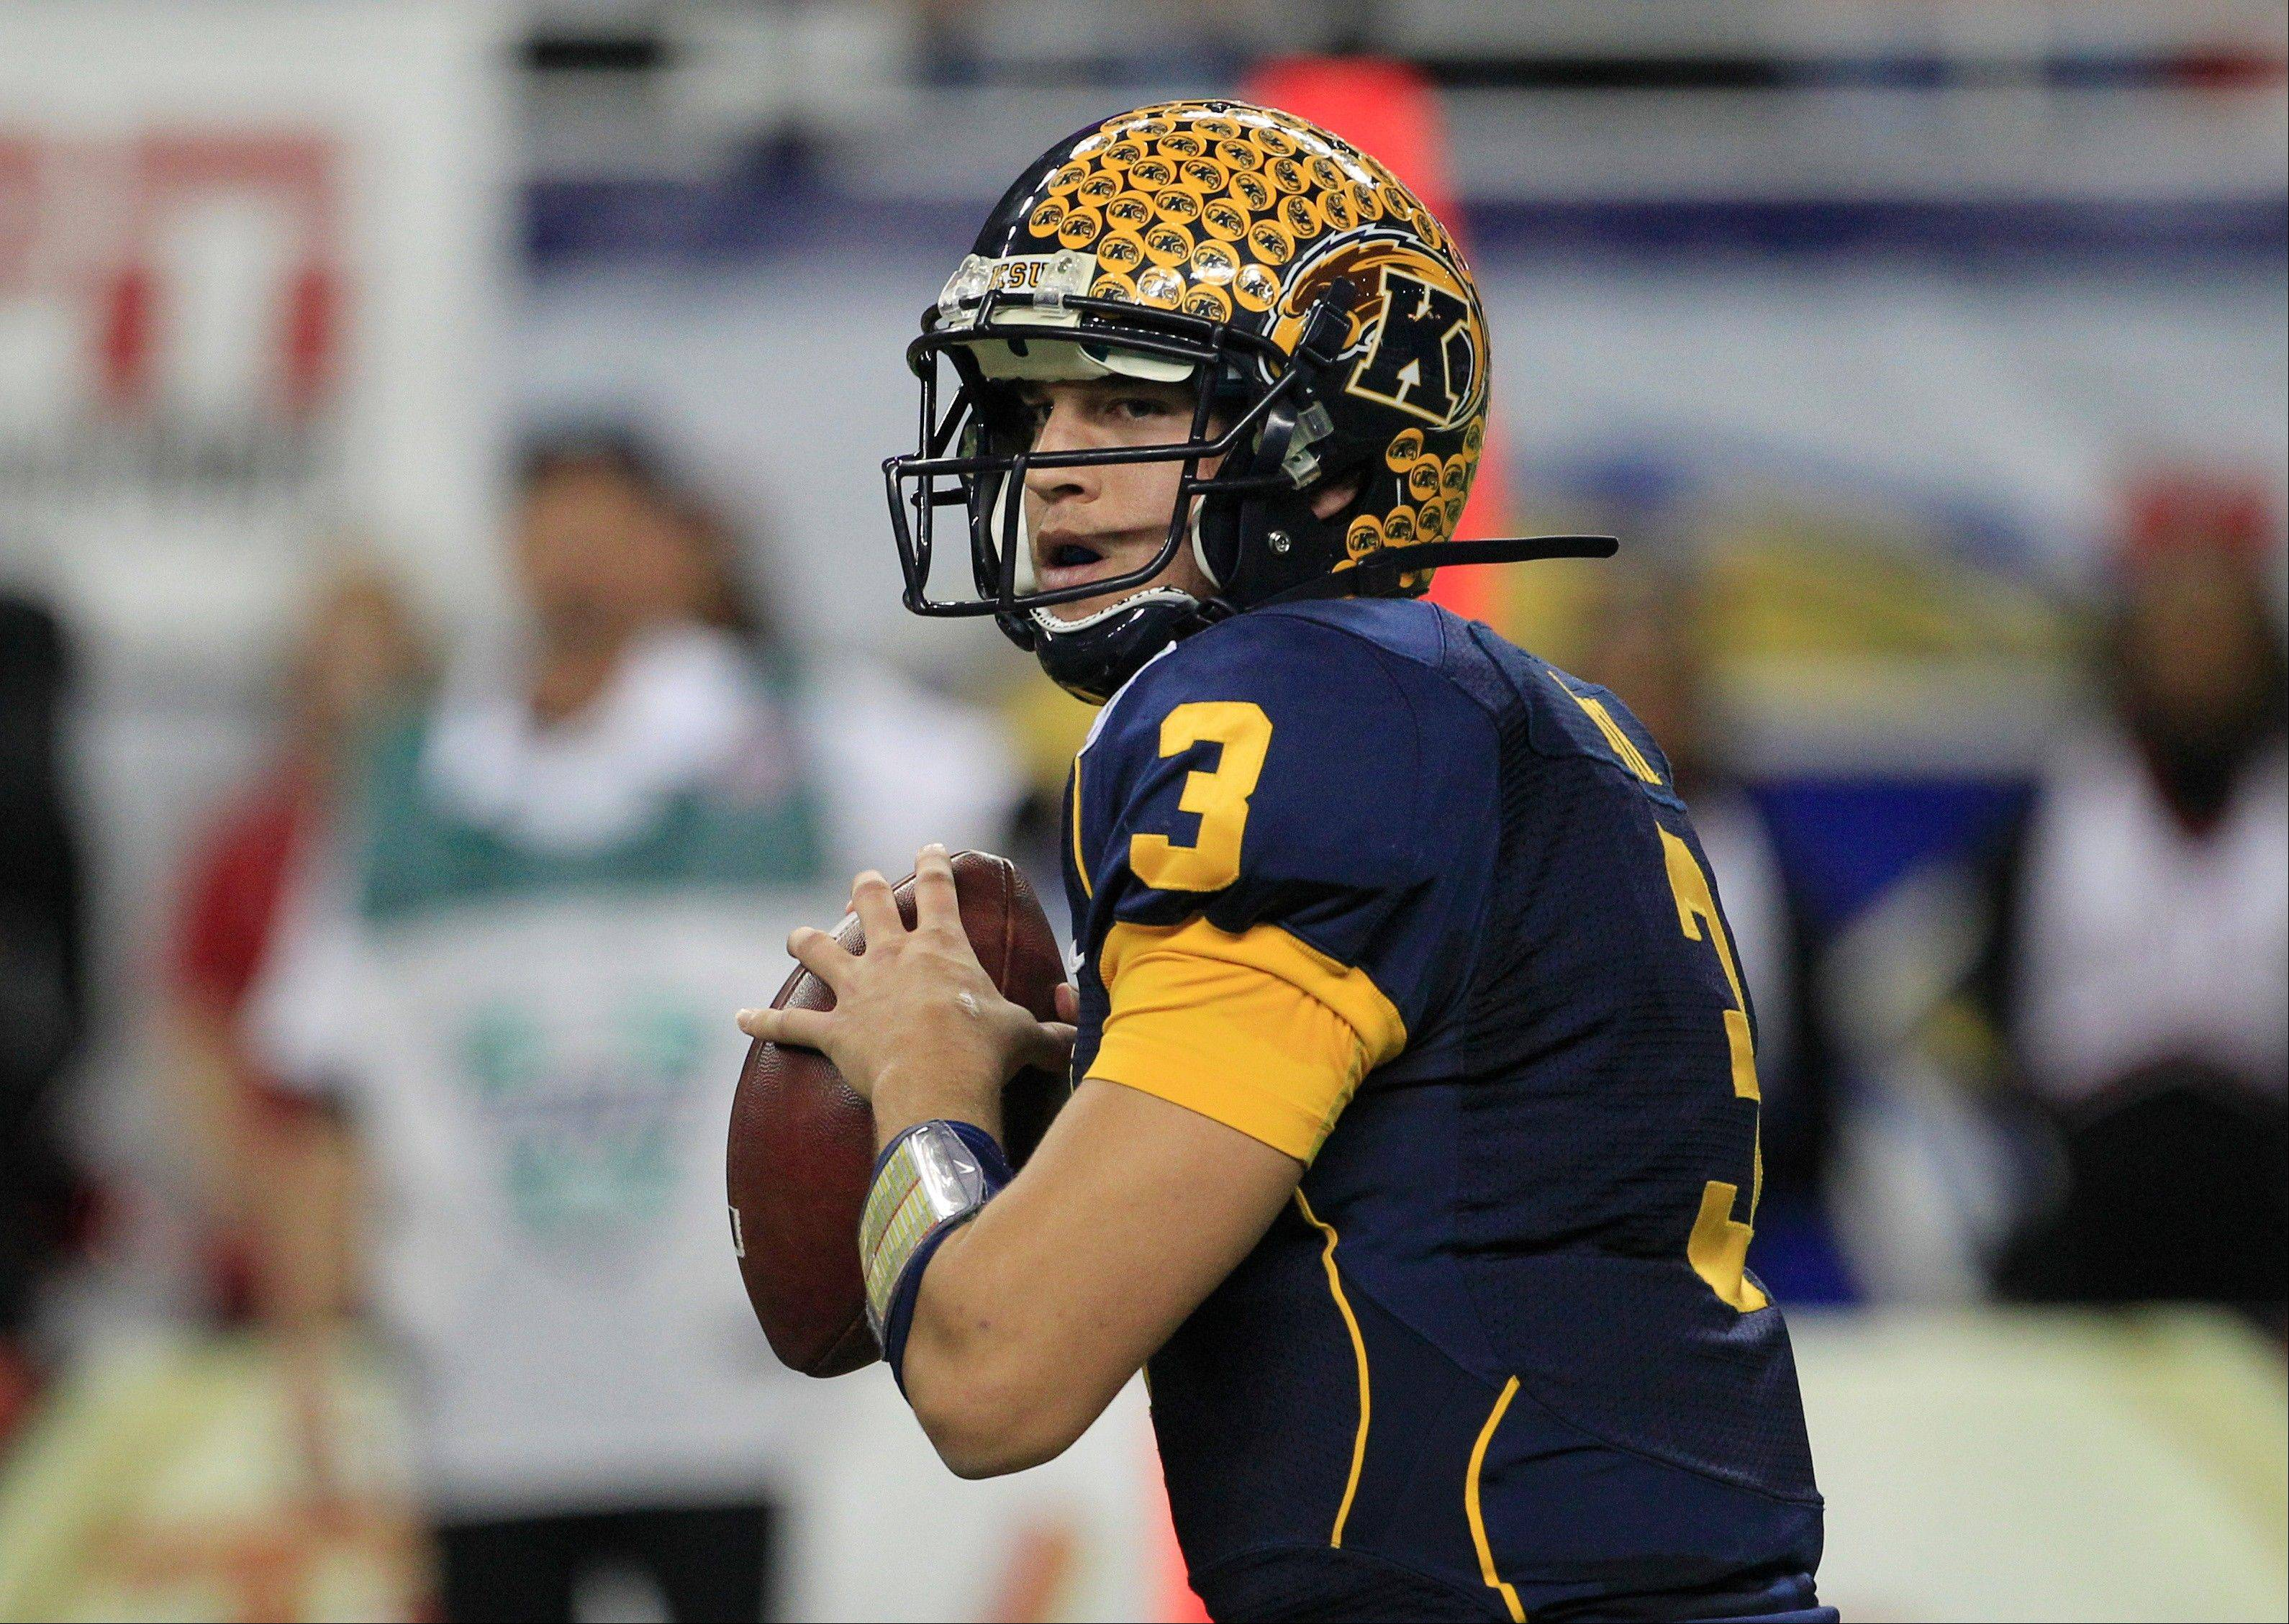 Kent State quarterback Spencer Keith looks for a receiver Friday during the first quarter.